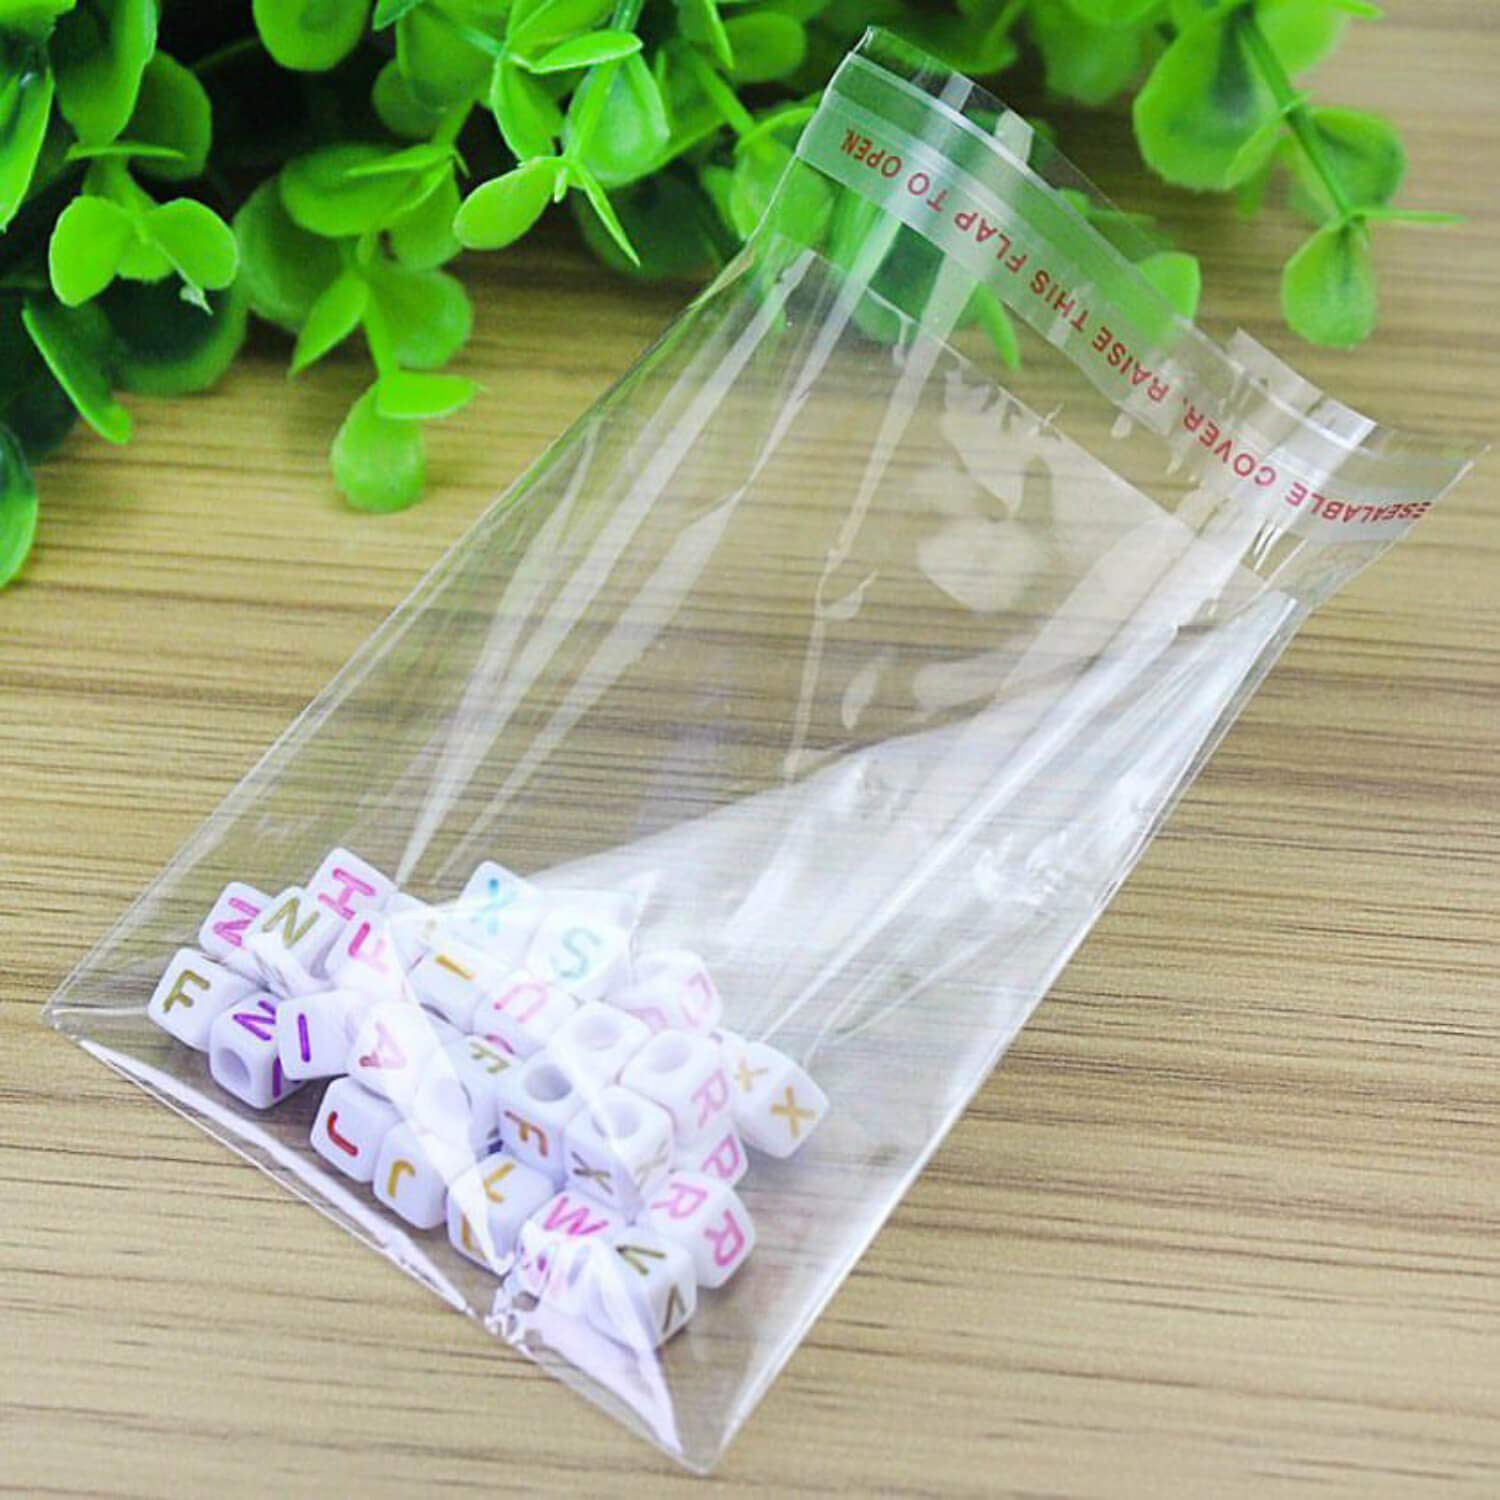 100 Clear /& Transparent Plastic Bags Grip Peel /& Seal Strong Packing Self Adhesive Cellophane Bags Small Size 2 X 4